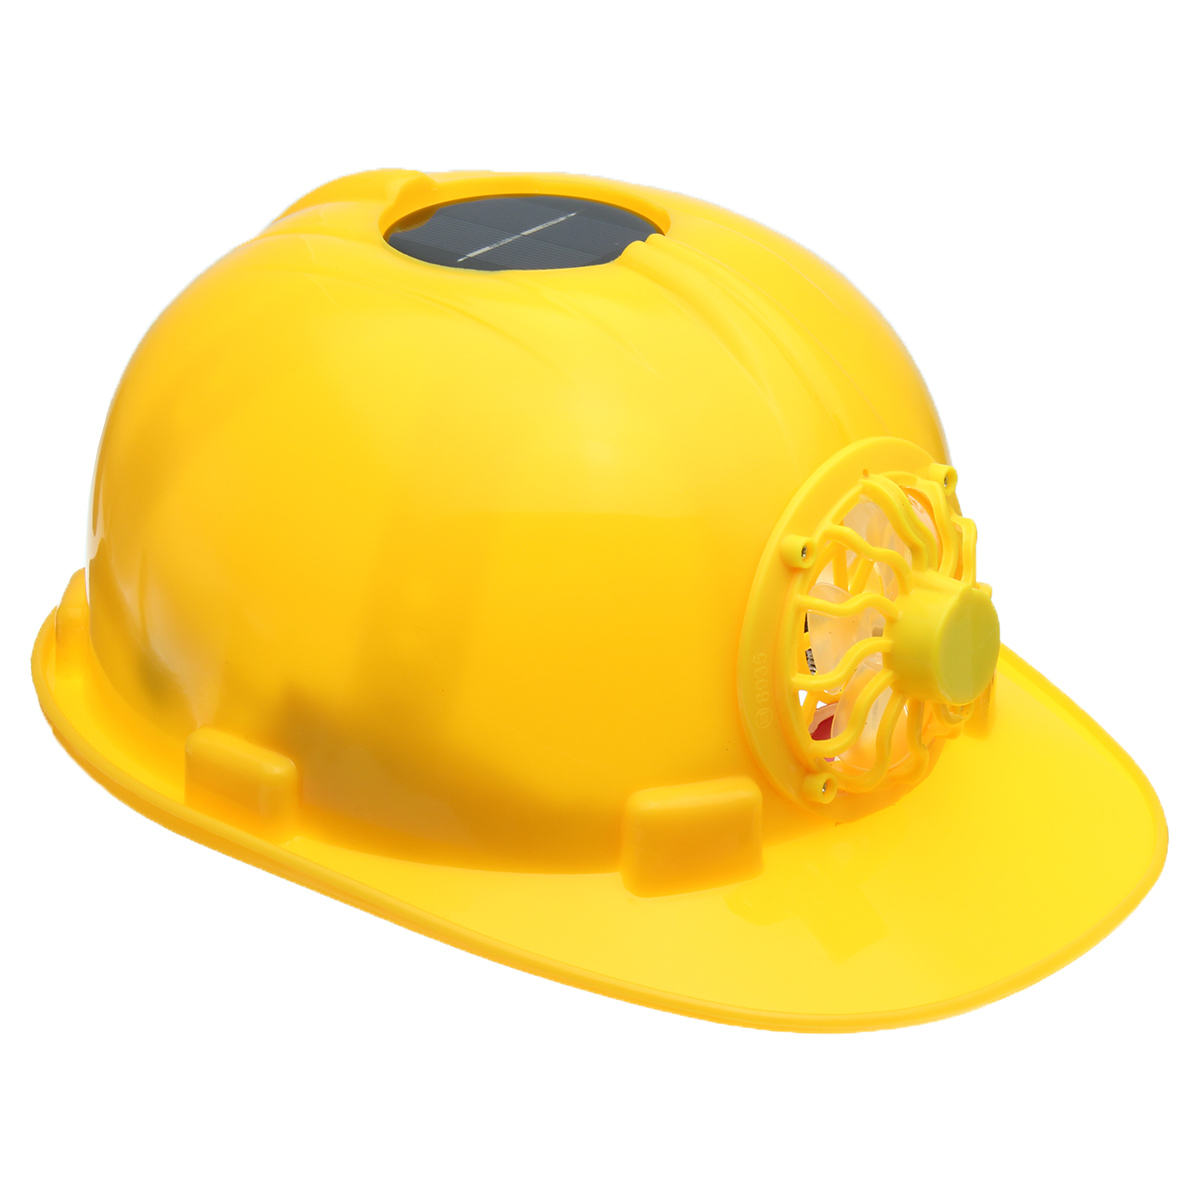 Solar Power Fan Helmet Outdoor Working Safety Hard Hat Construction Workplace ABS Material Protective Cap Powered Yellow